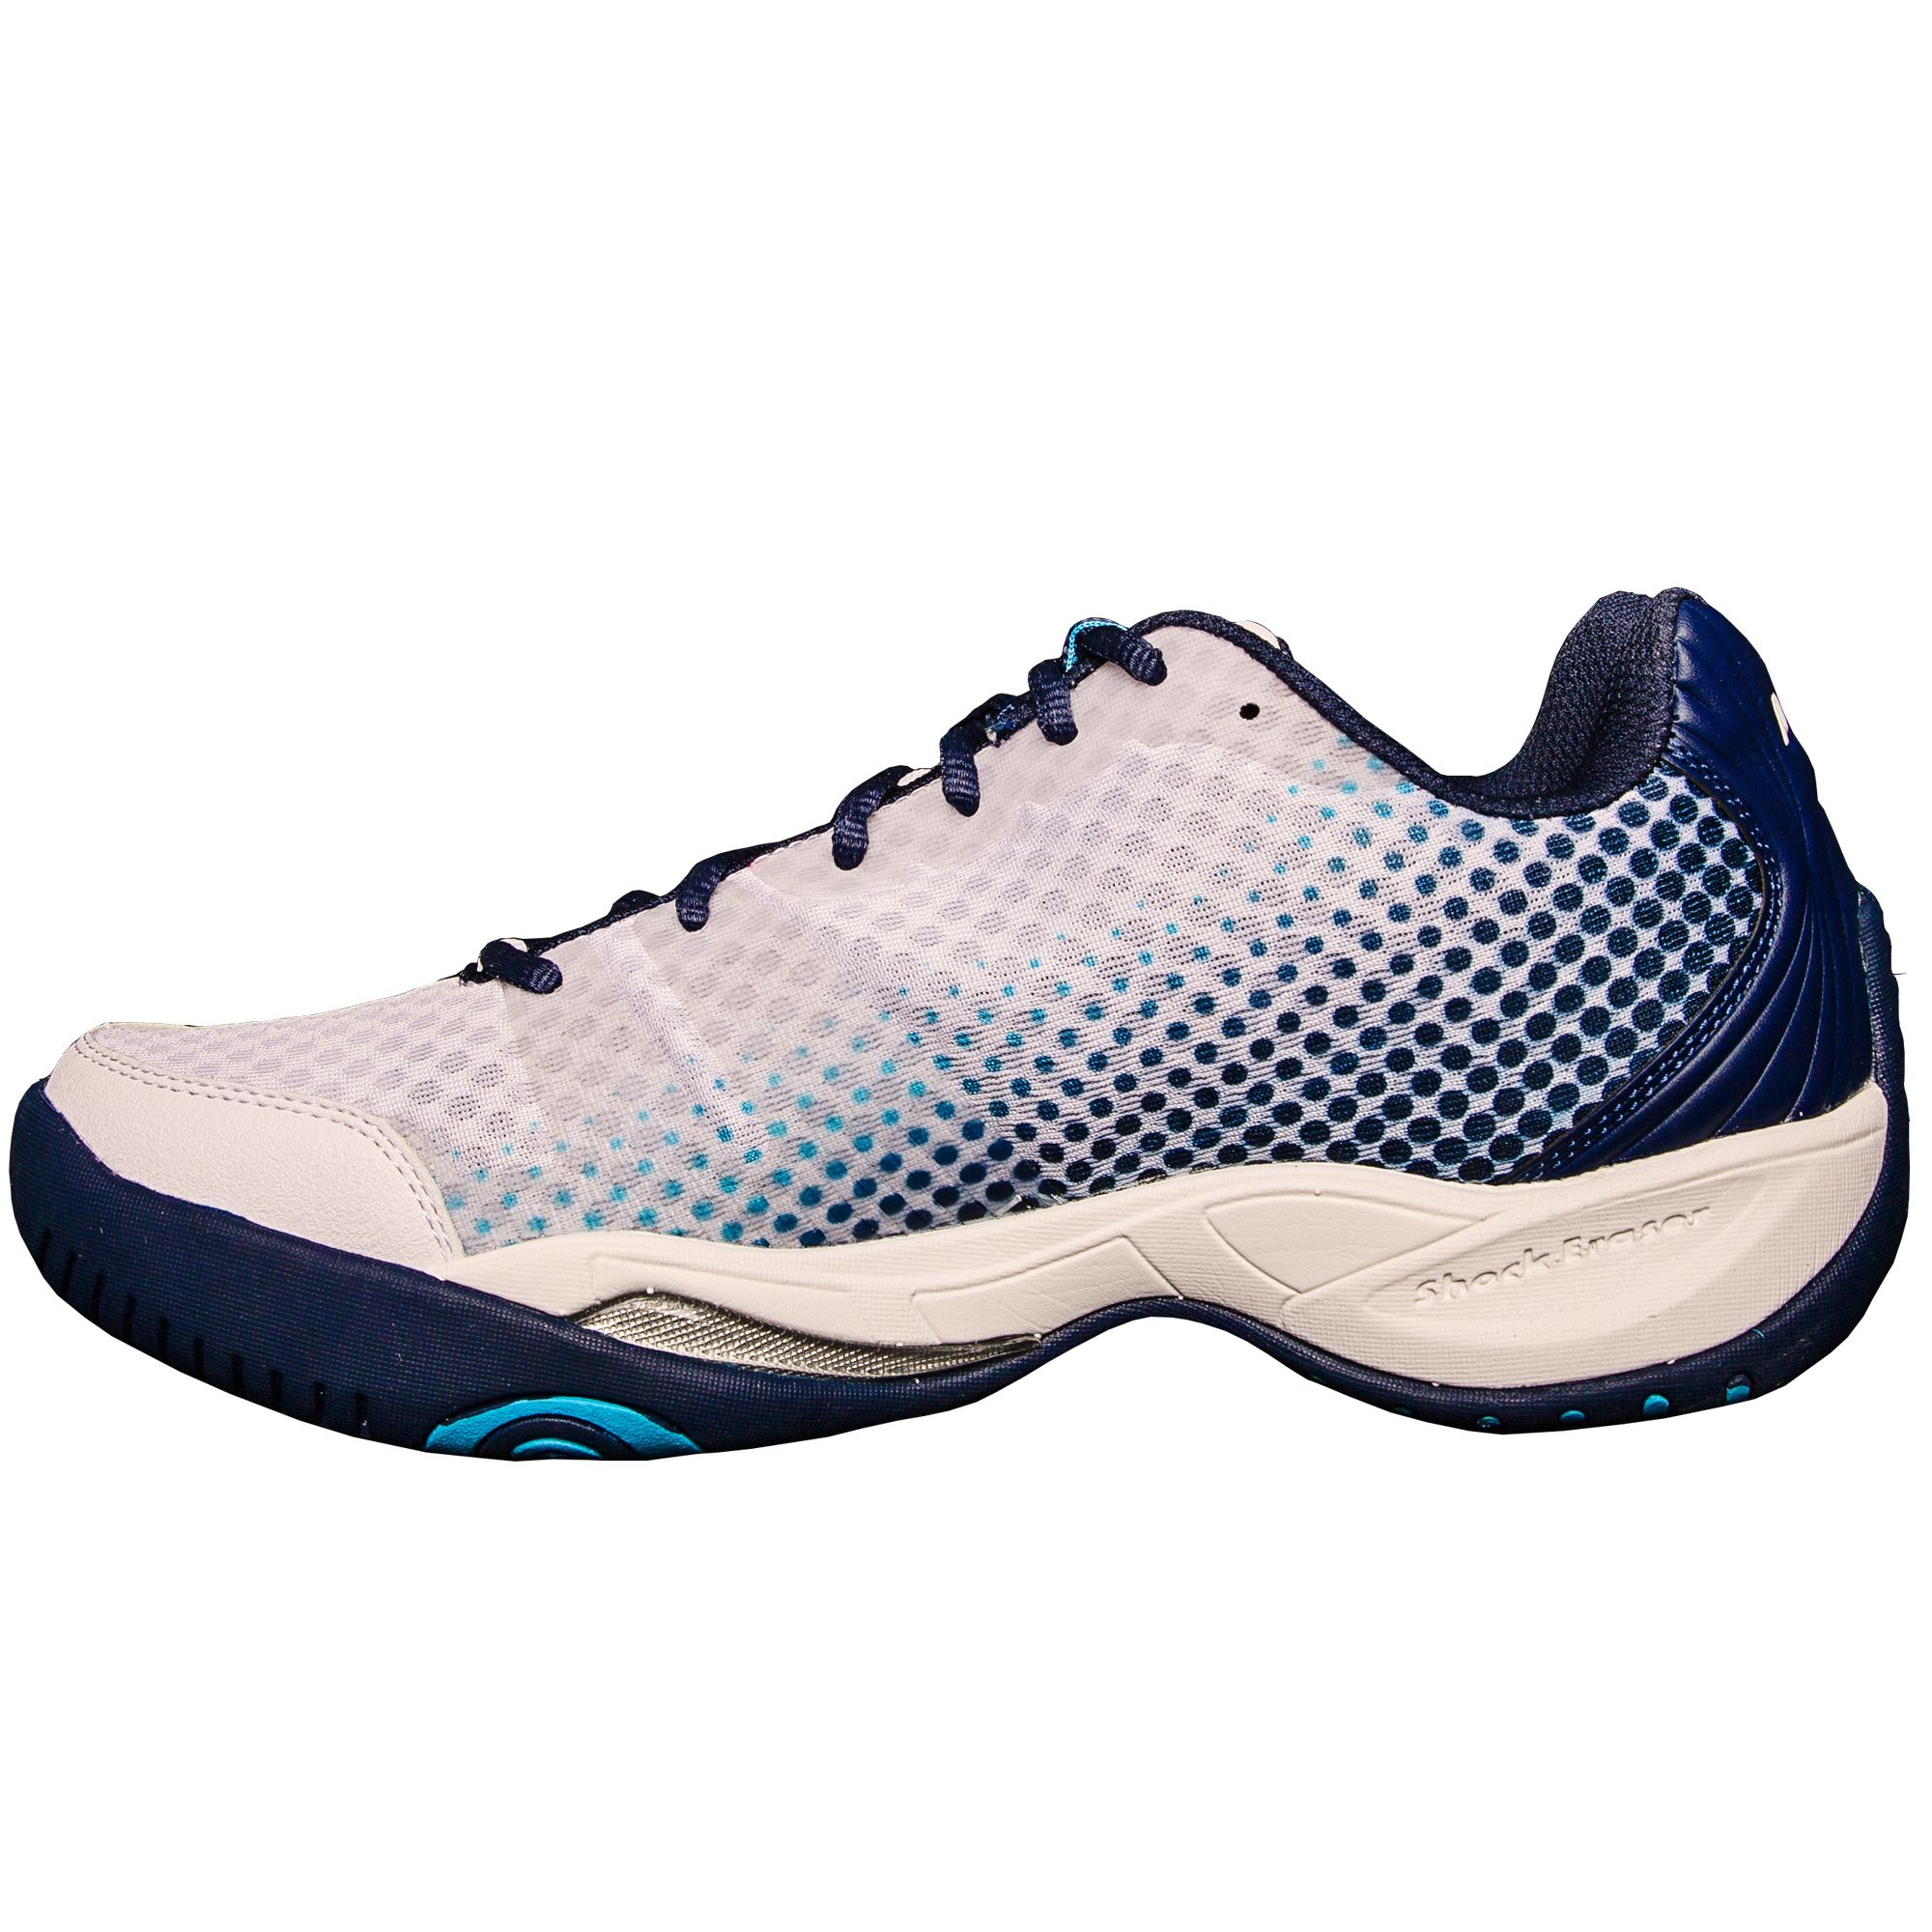 Prince T Mens Tennis Shoes Review